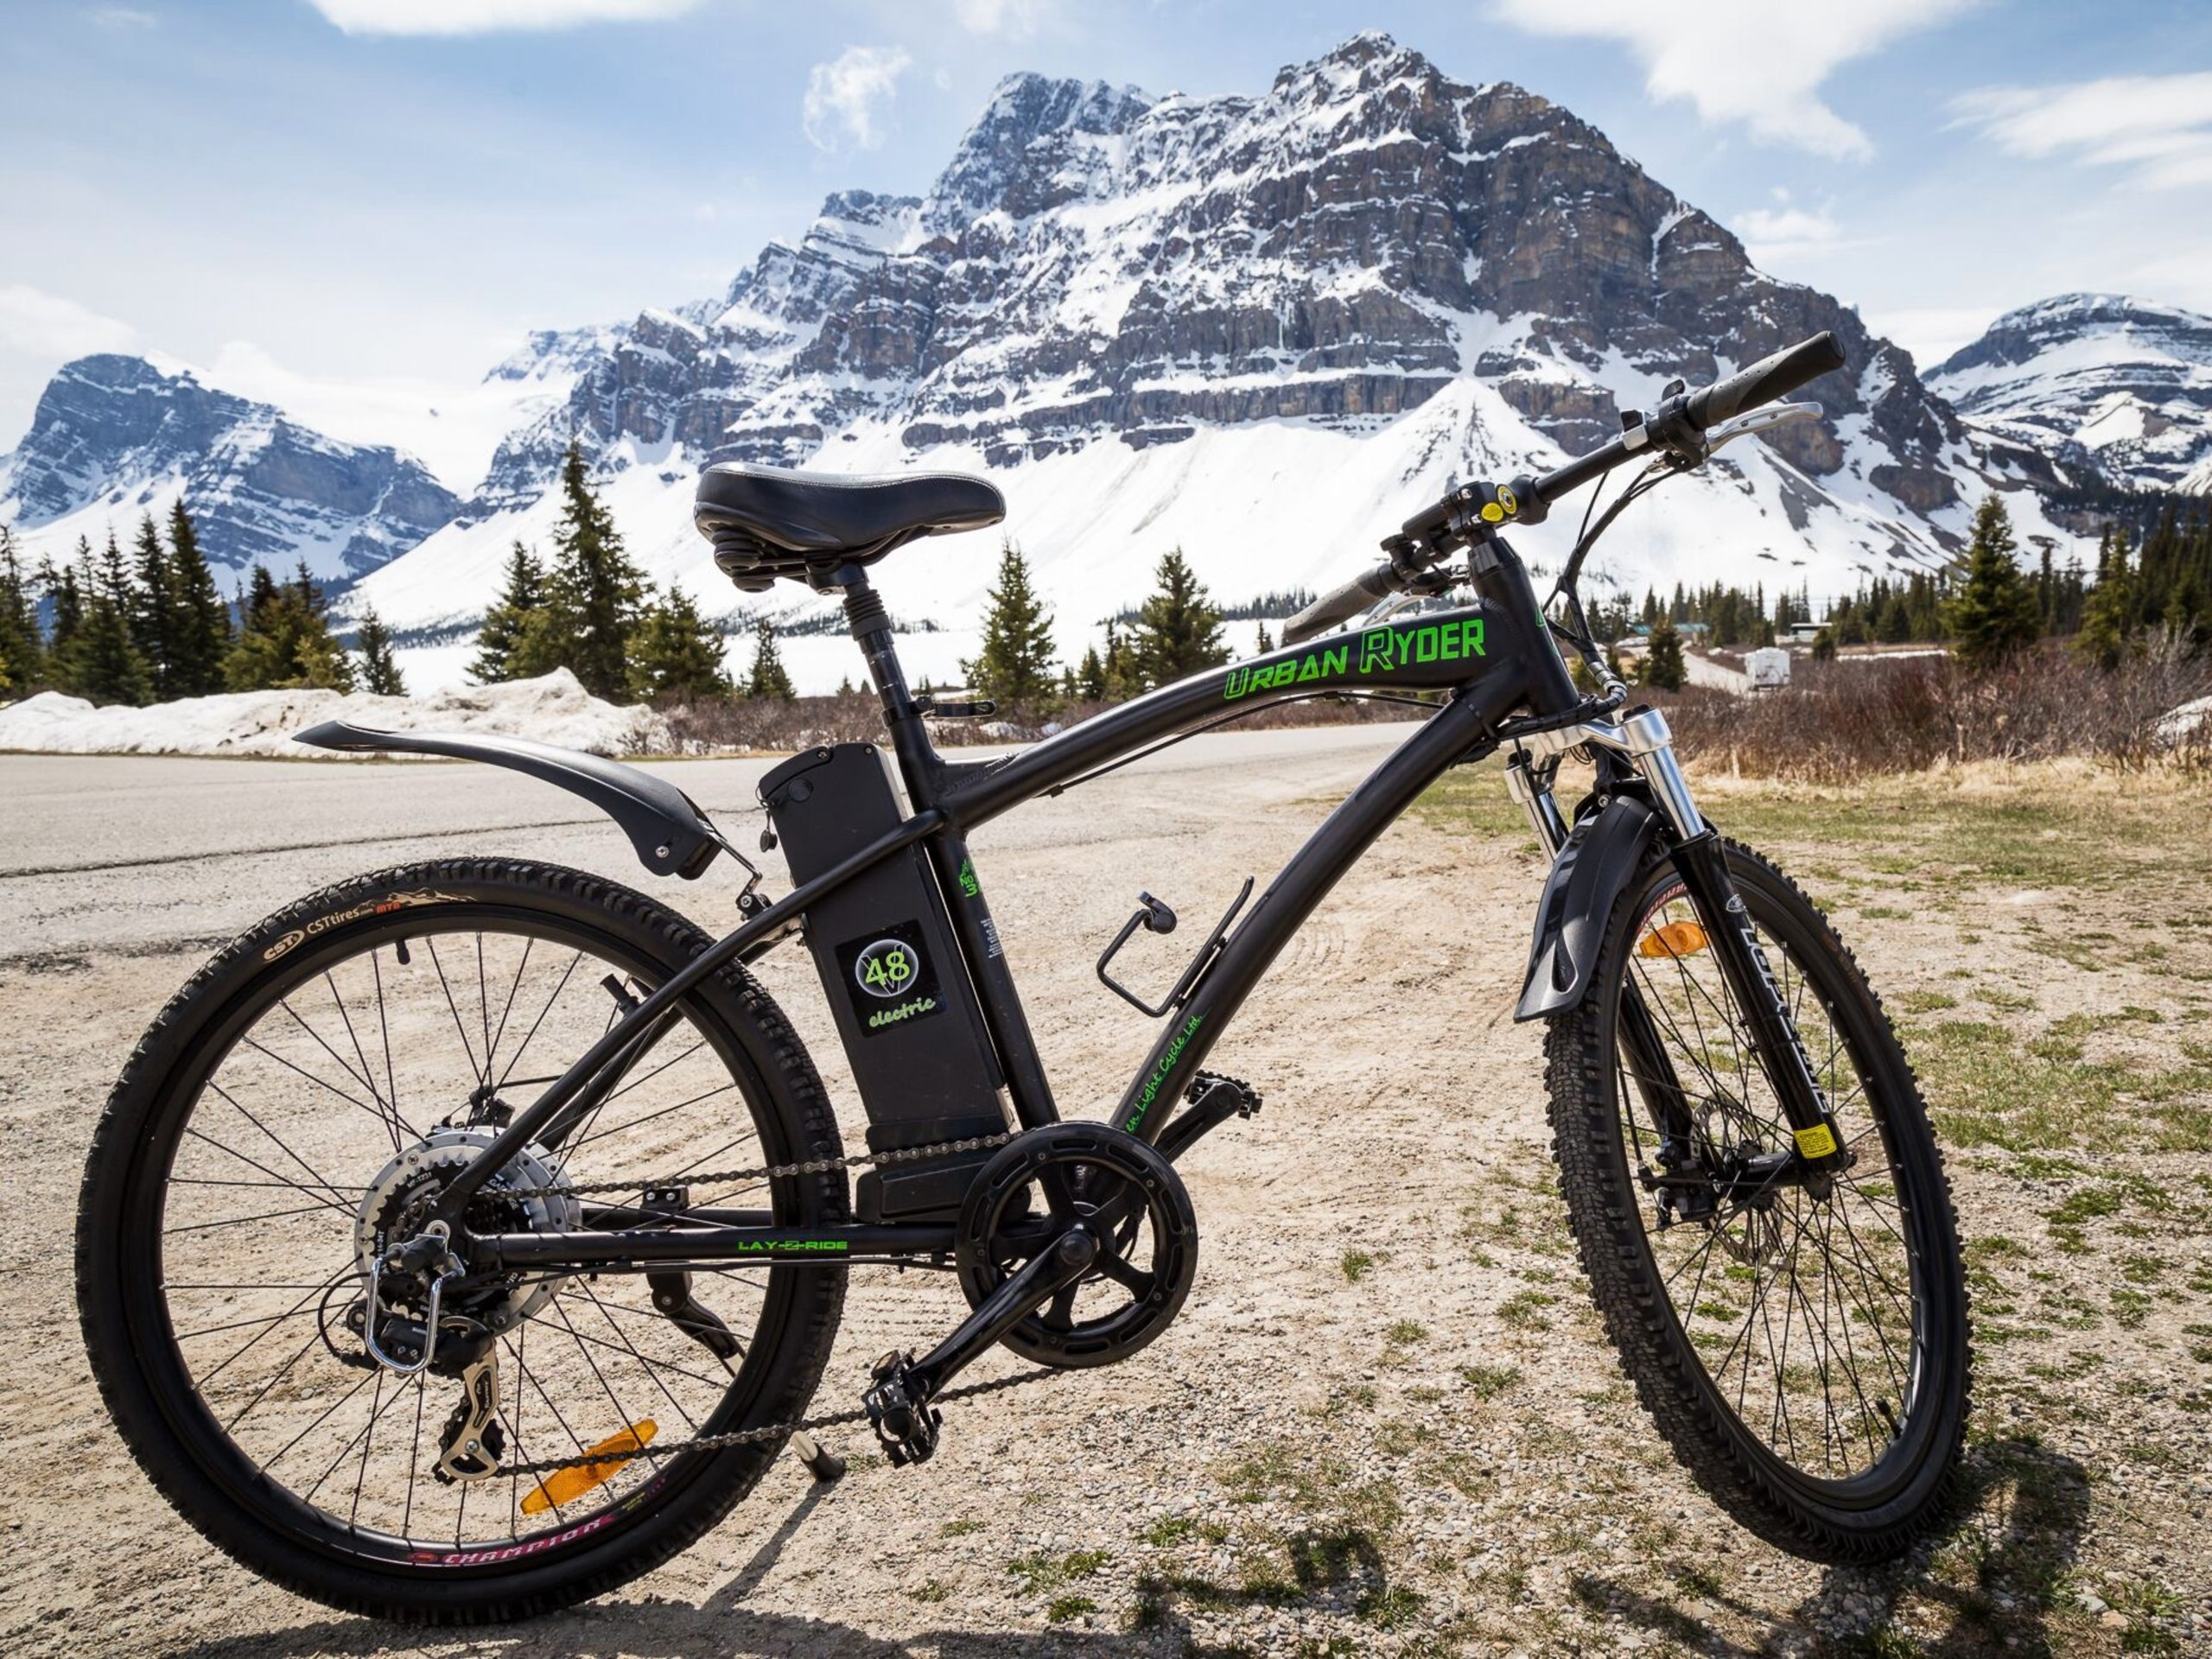 E-Bike in front of beautiful mountains